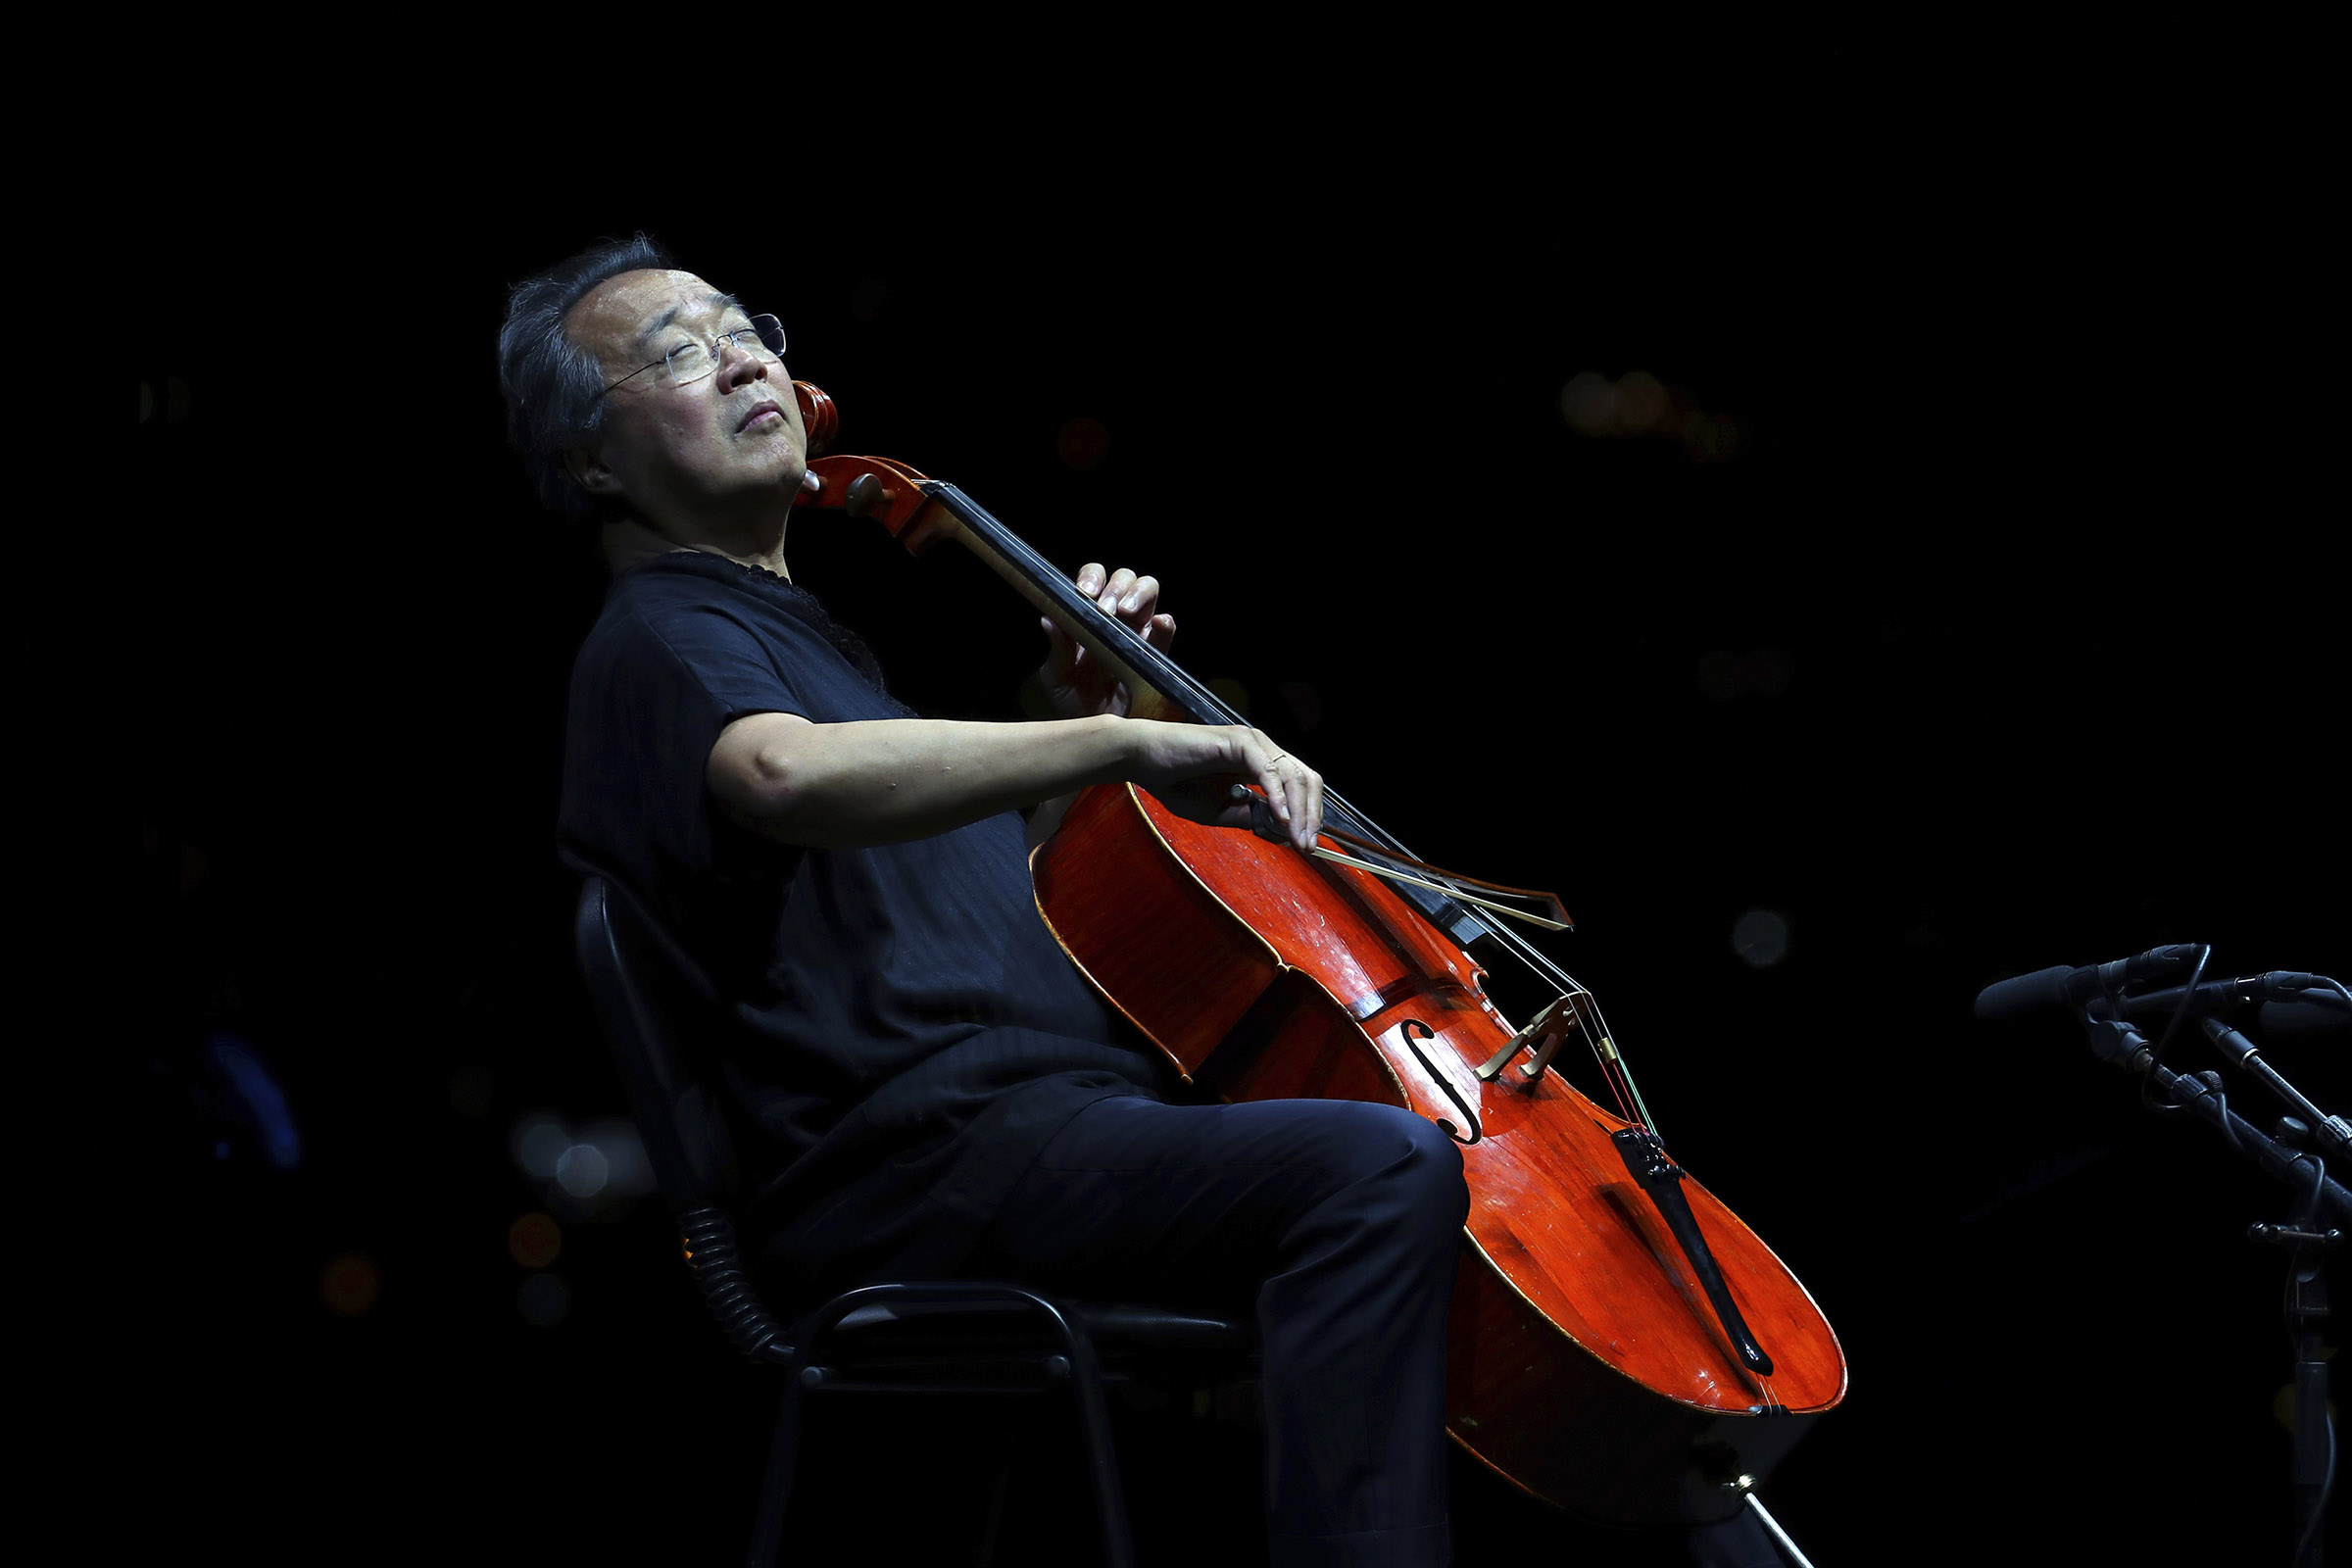 Cellist Yo-Yo Ma performs during the Byblos International Festival in Lebanon, on Aug. 24, 2019.